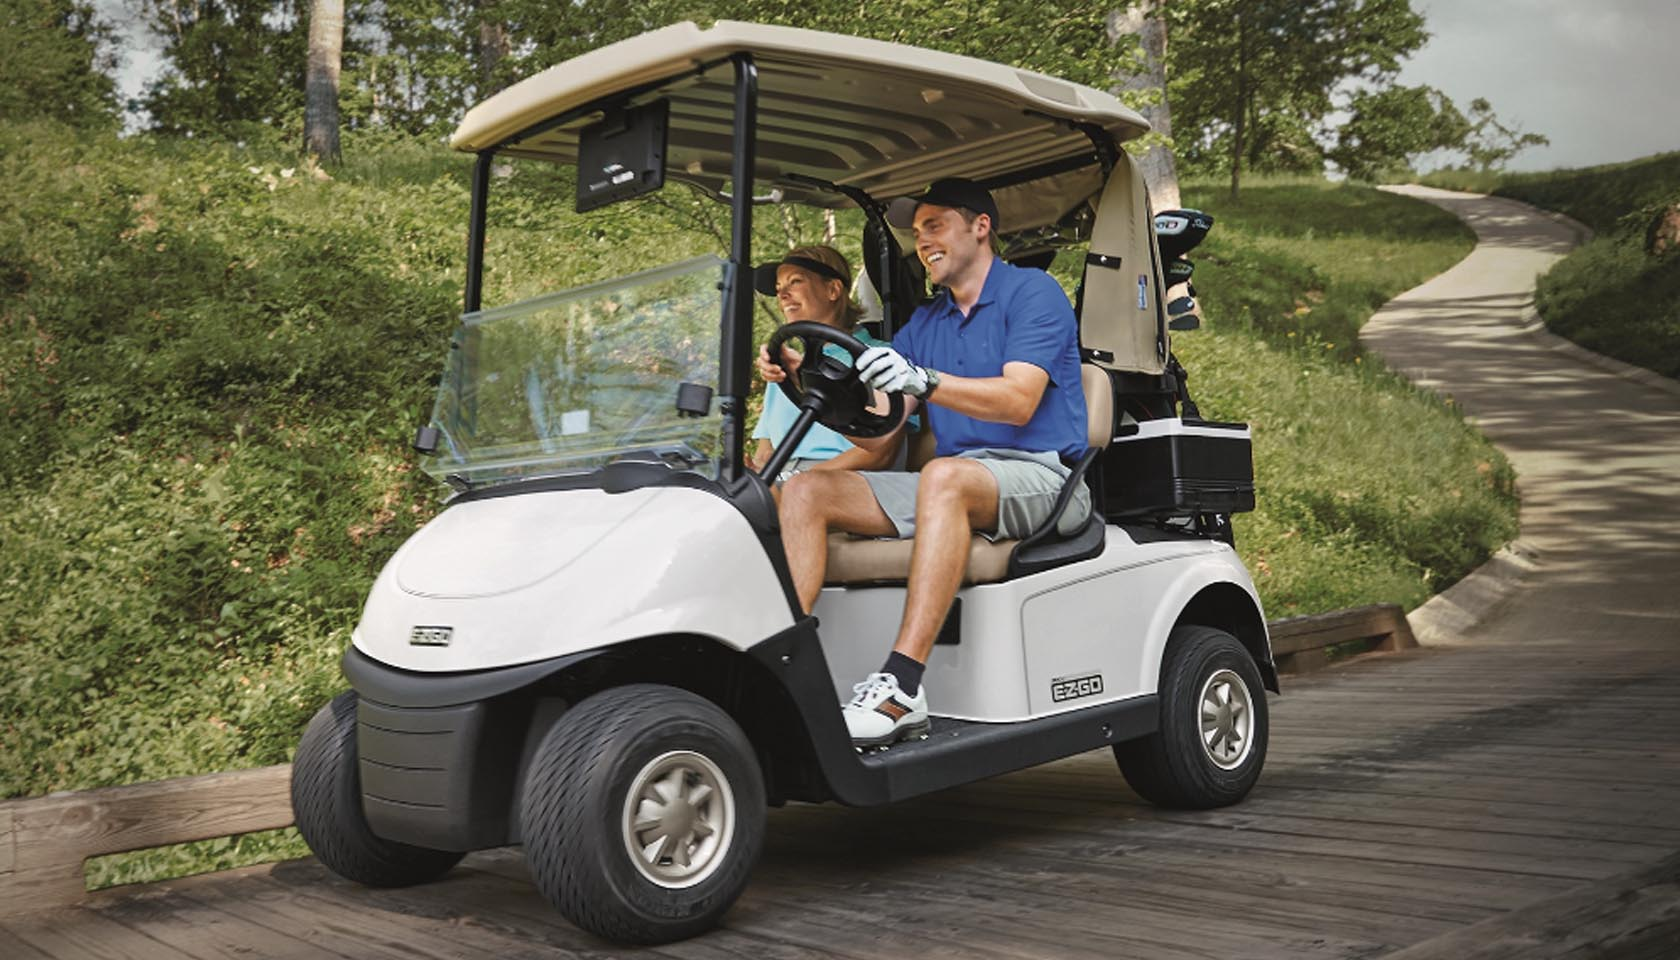 The Golf Business: Lithium Battery is the Best Choice for Golf Buggies